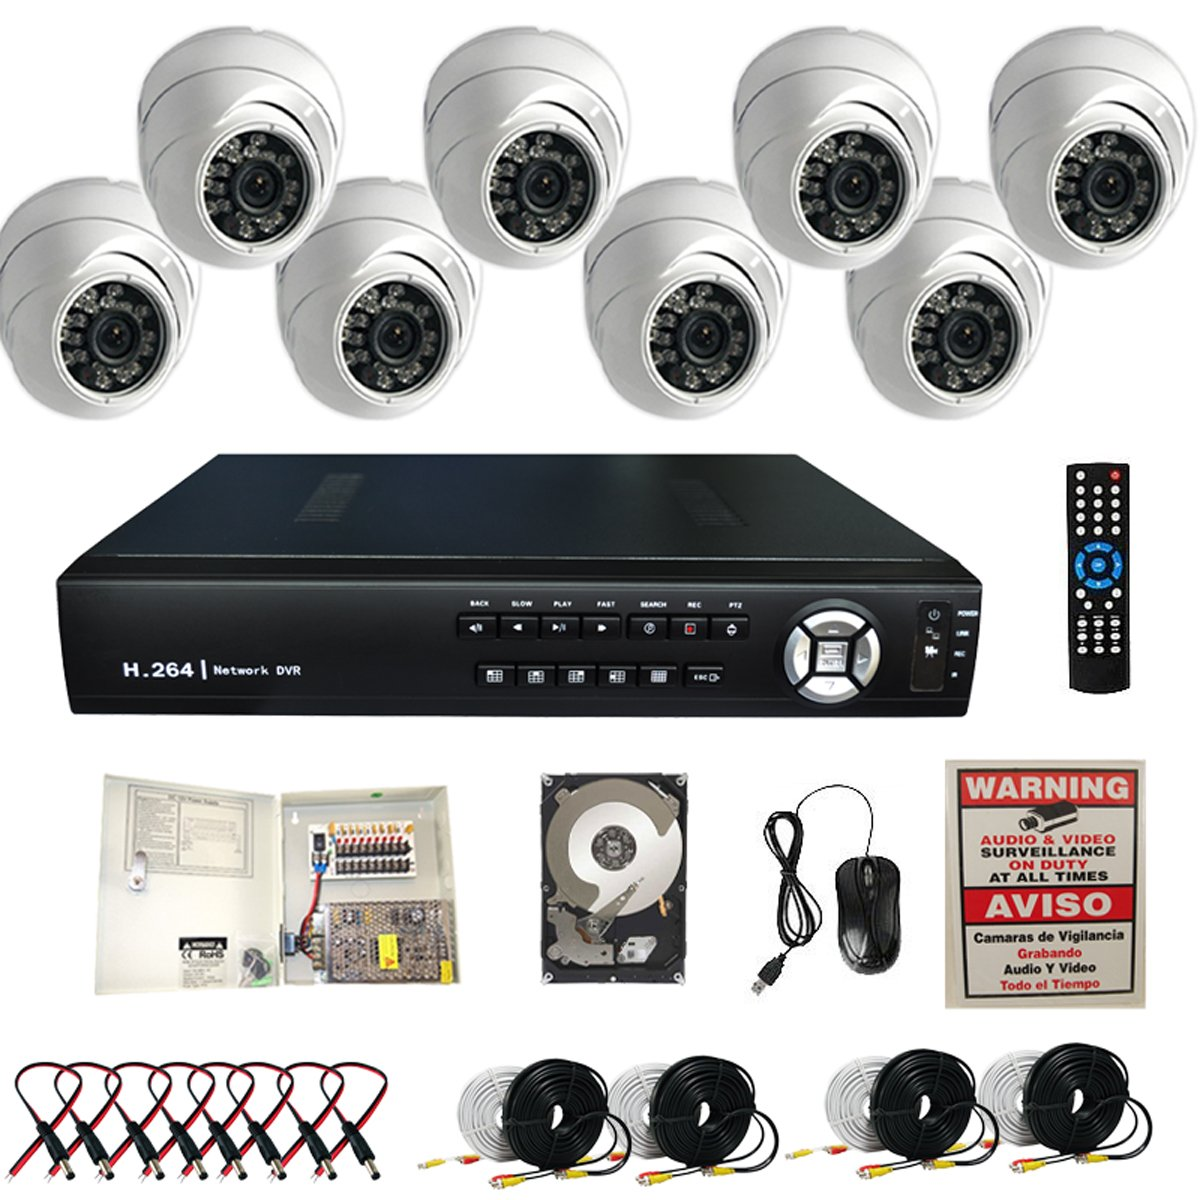 Amazon.com : Evertech 8CH H.264 VIDEO COMPRESSION REAL-TIME DVR Clouid Option CCTV Surveillance System with 8 Dome Security 700TVL Aptina Cameras-2TB HDD ...